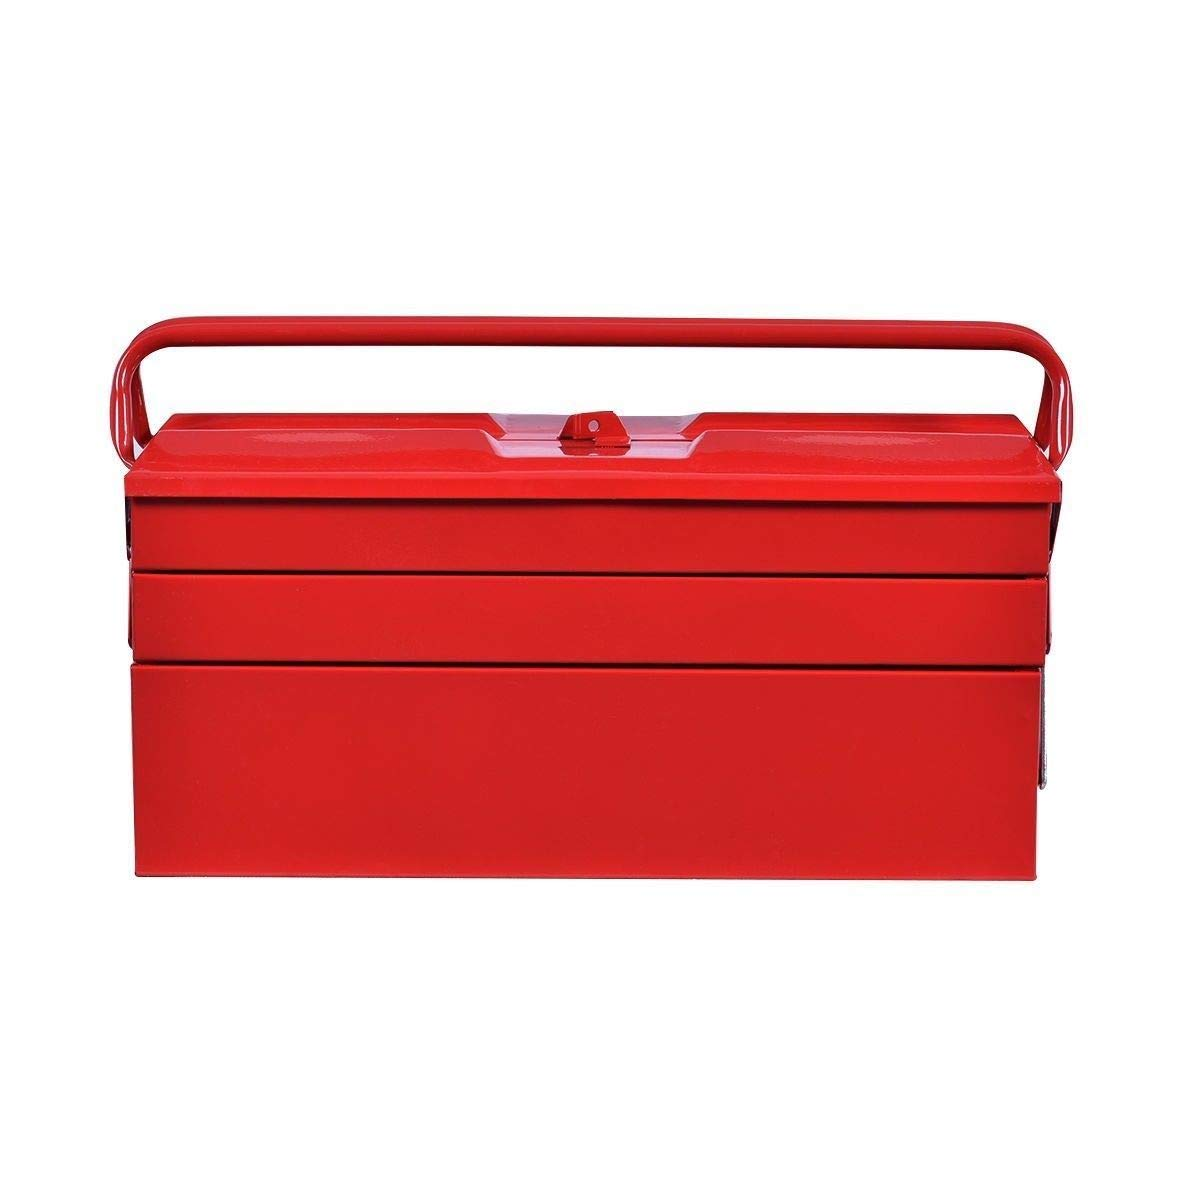 Red 19.5'' Portable Steel Garage Storage Tool Box w/ 5 Tray & Handle with Ebook